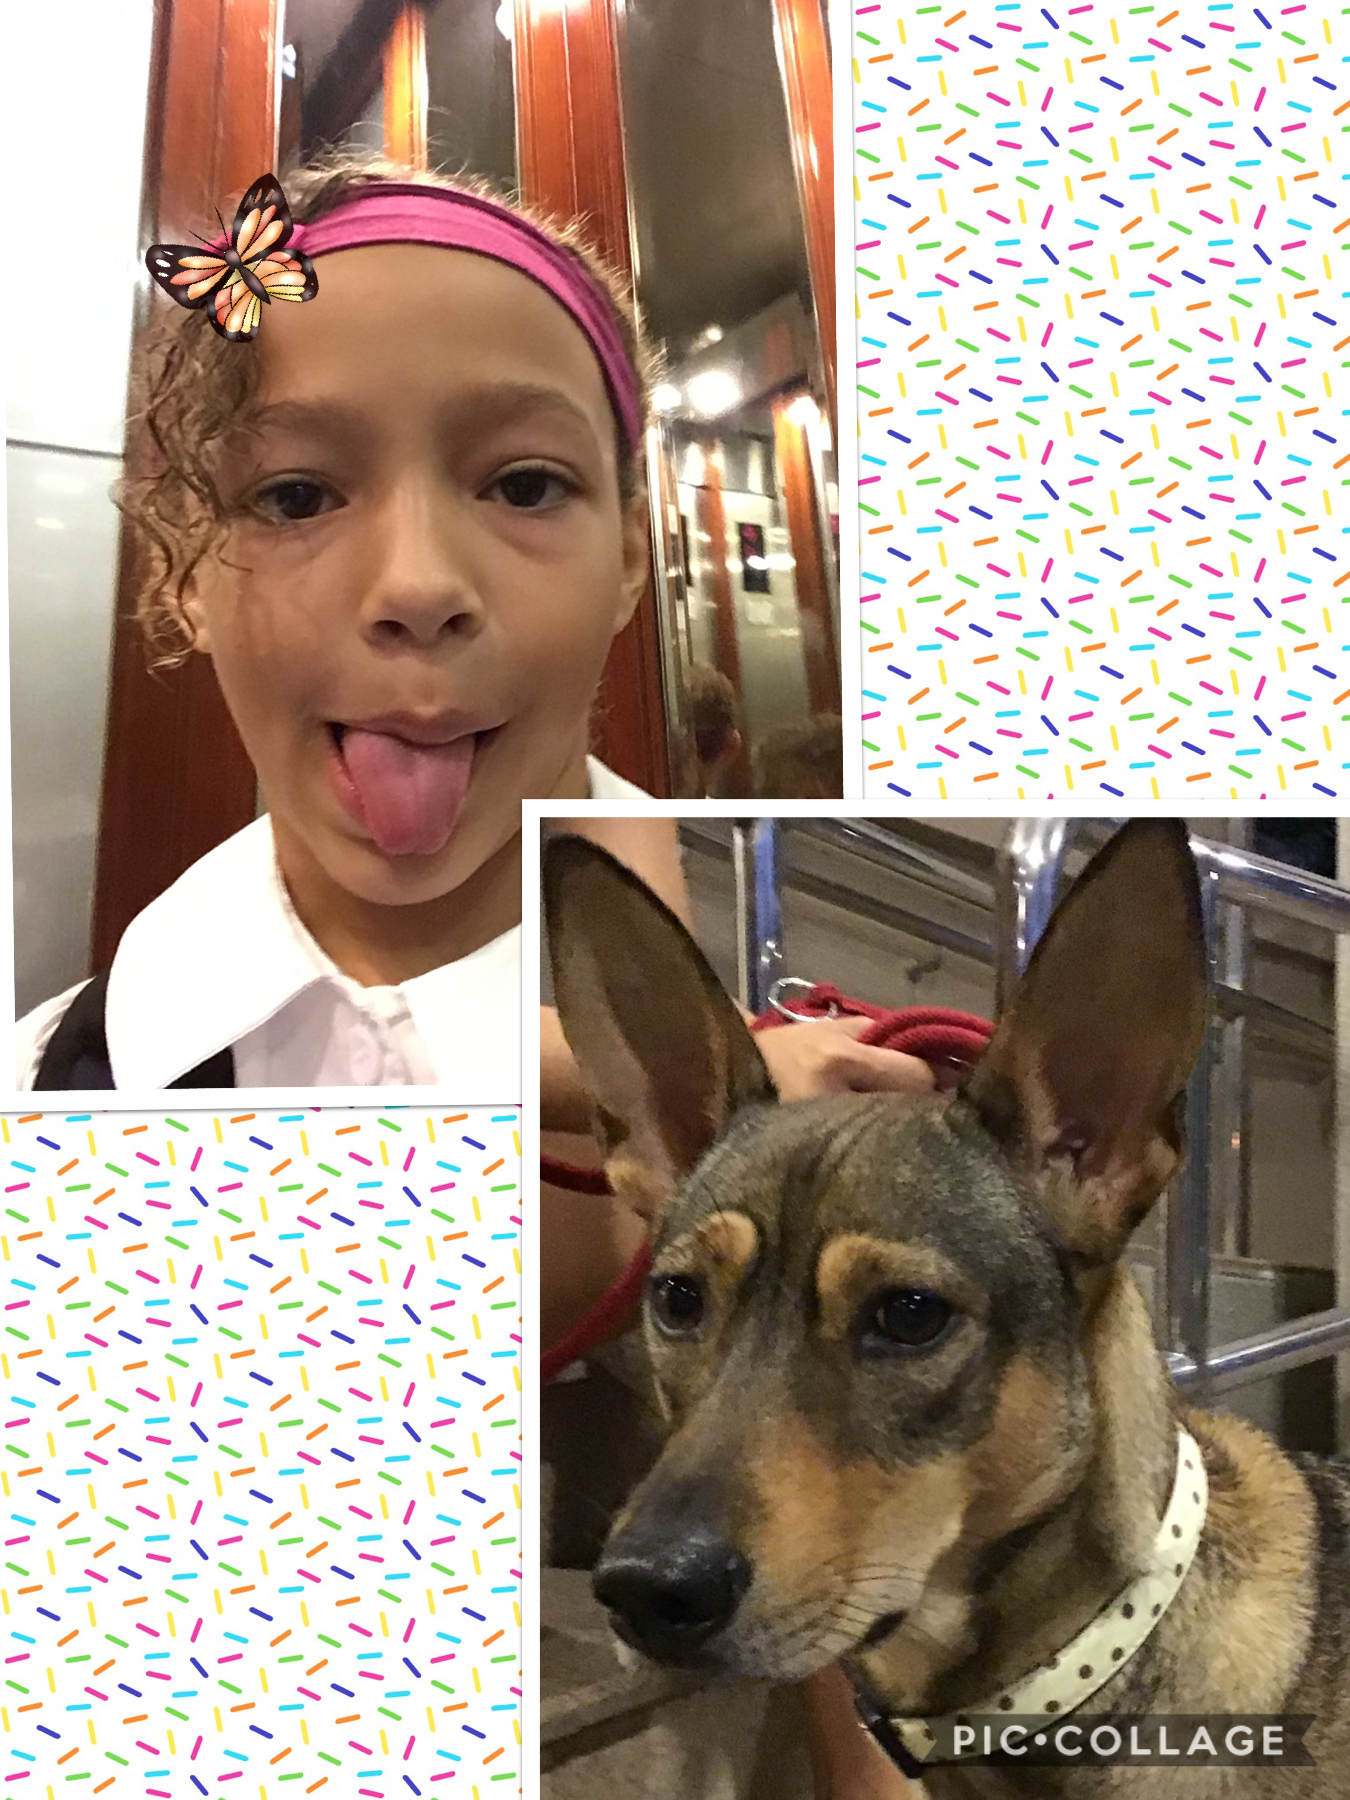 My very first picCollage